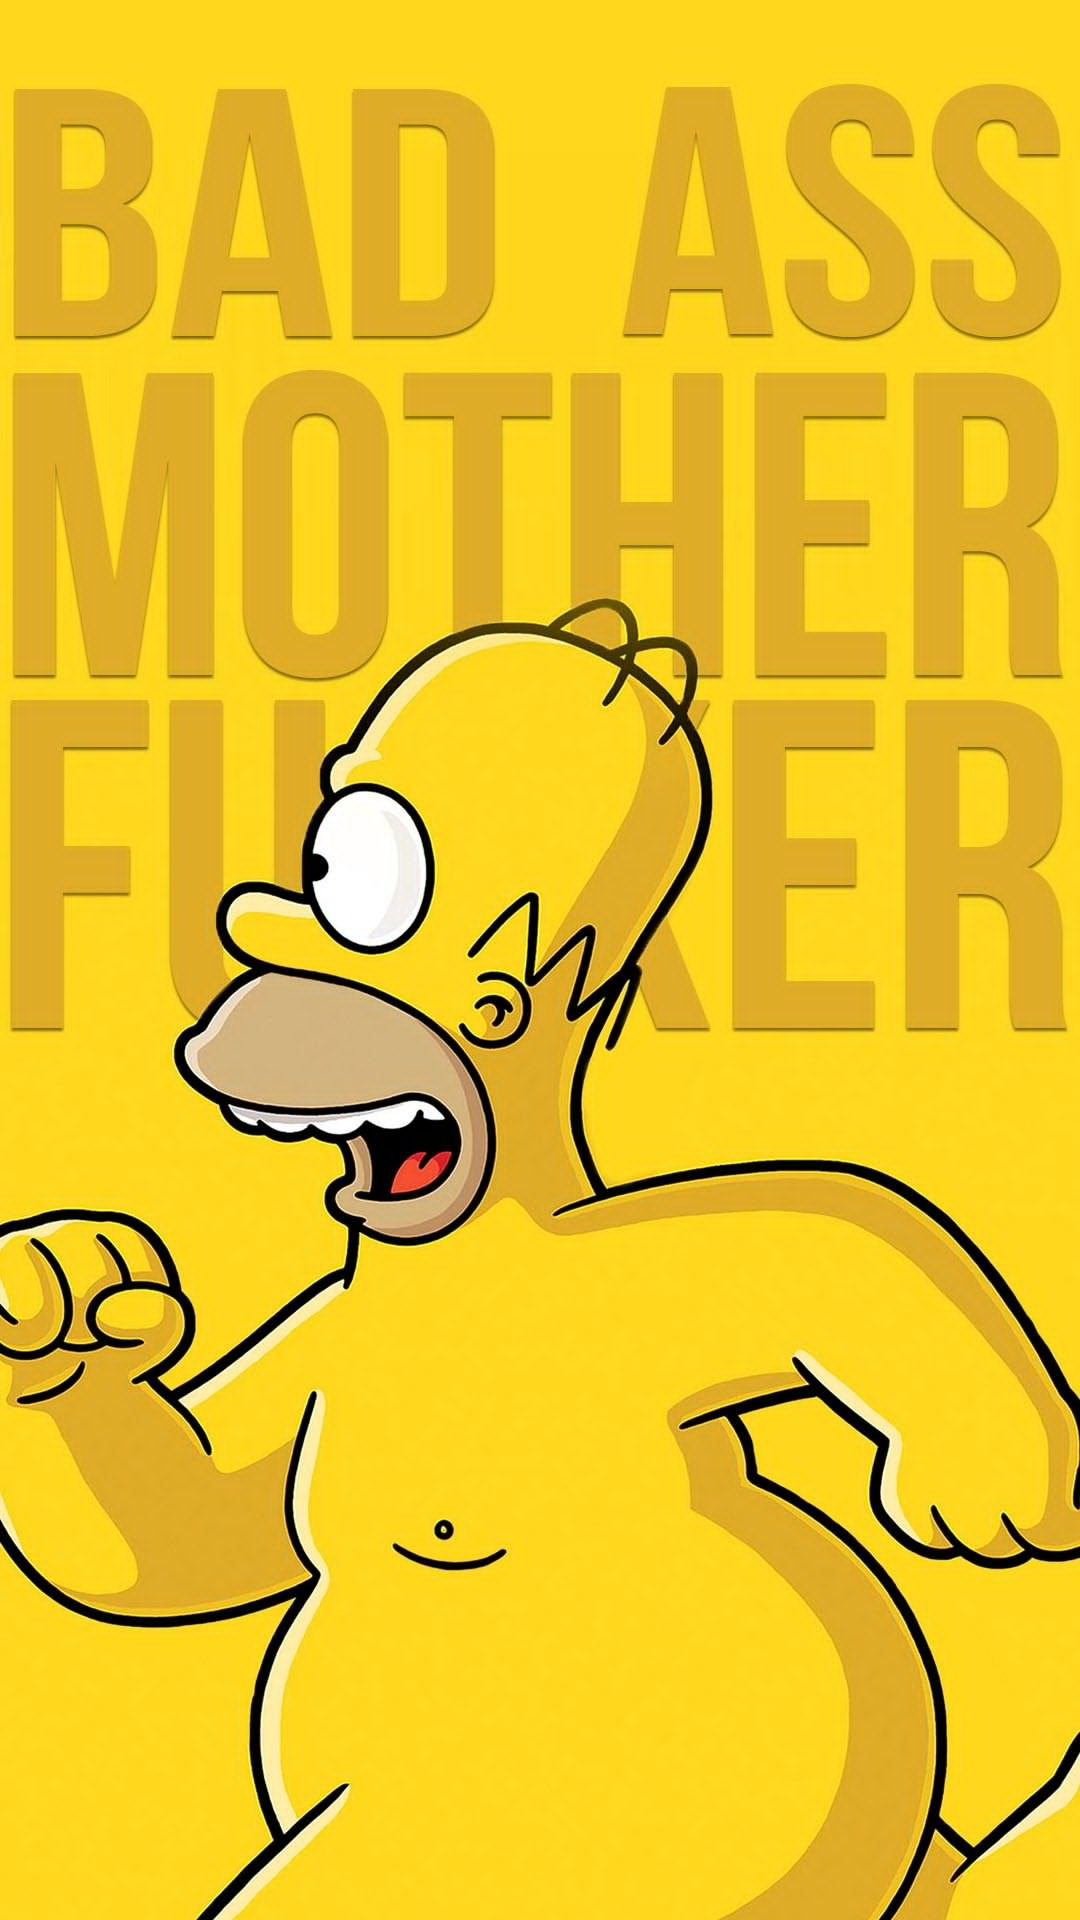 Nwa Iphone Wallpaper Homer Wallpaper For Iphone X 8 7 6 Free Download On